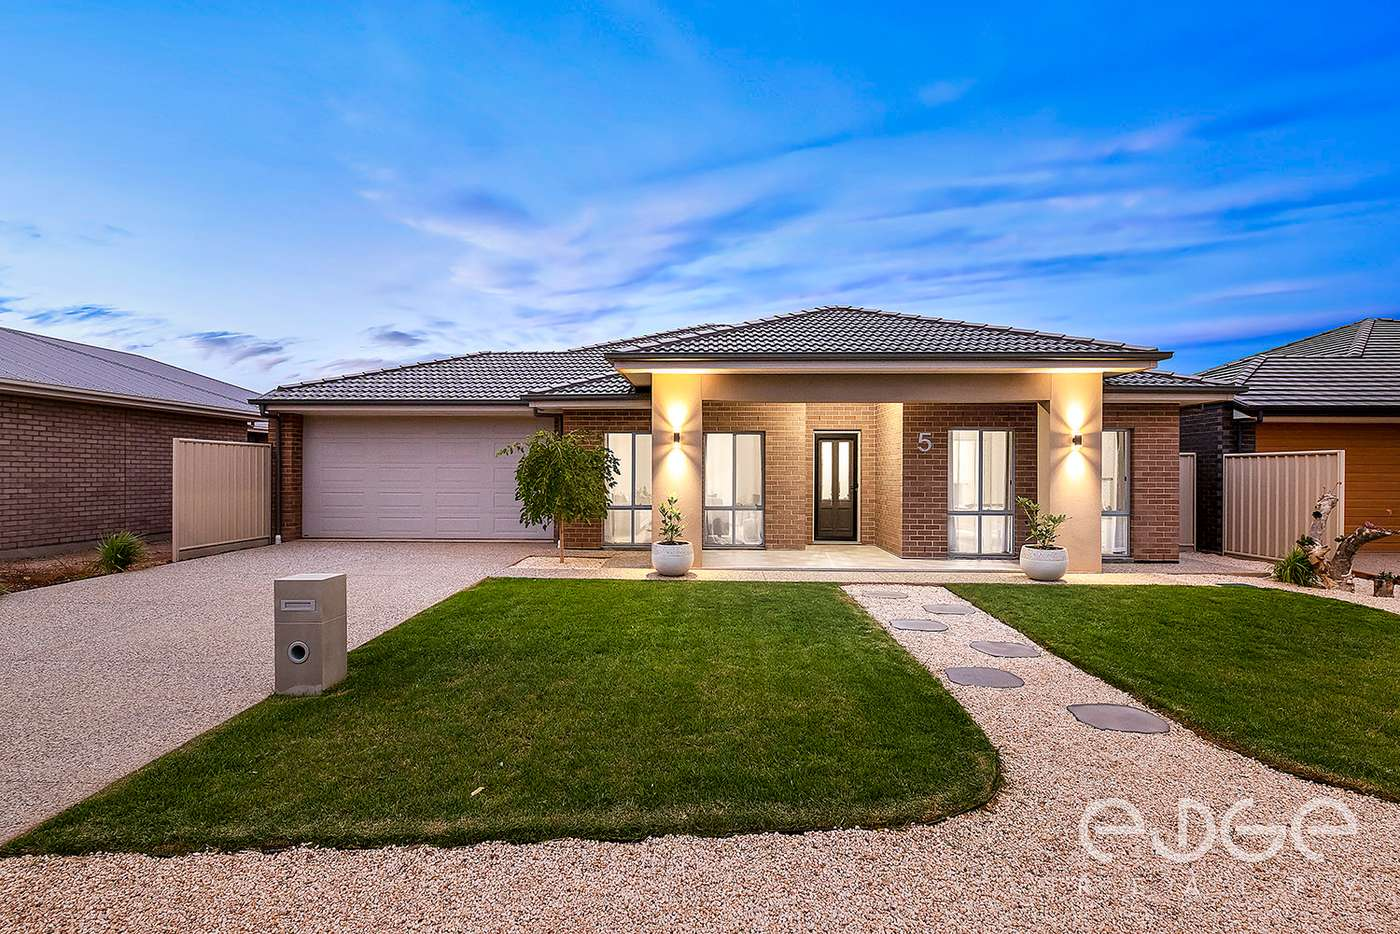 Main view of Homely house listing, 5 Green Court, Angle Vale SA 5117